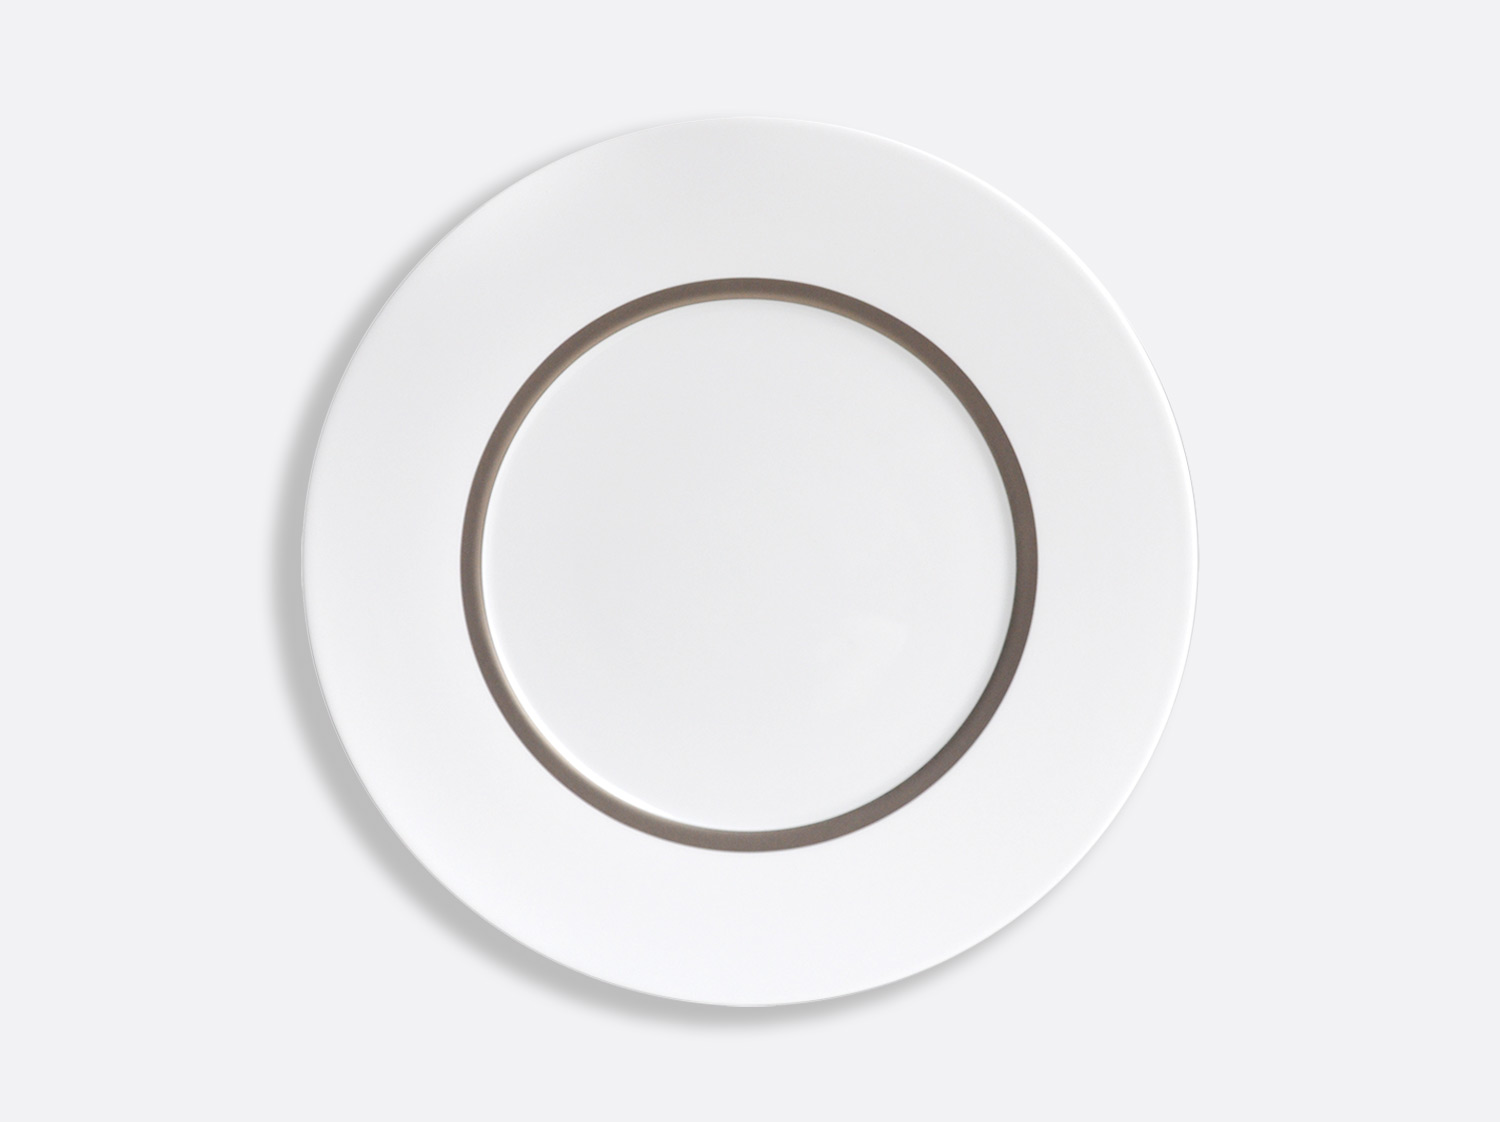 Assiette Astre 27 cm en porcelaine de la collection Cronos Platine Bernardaud